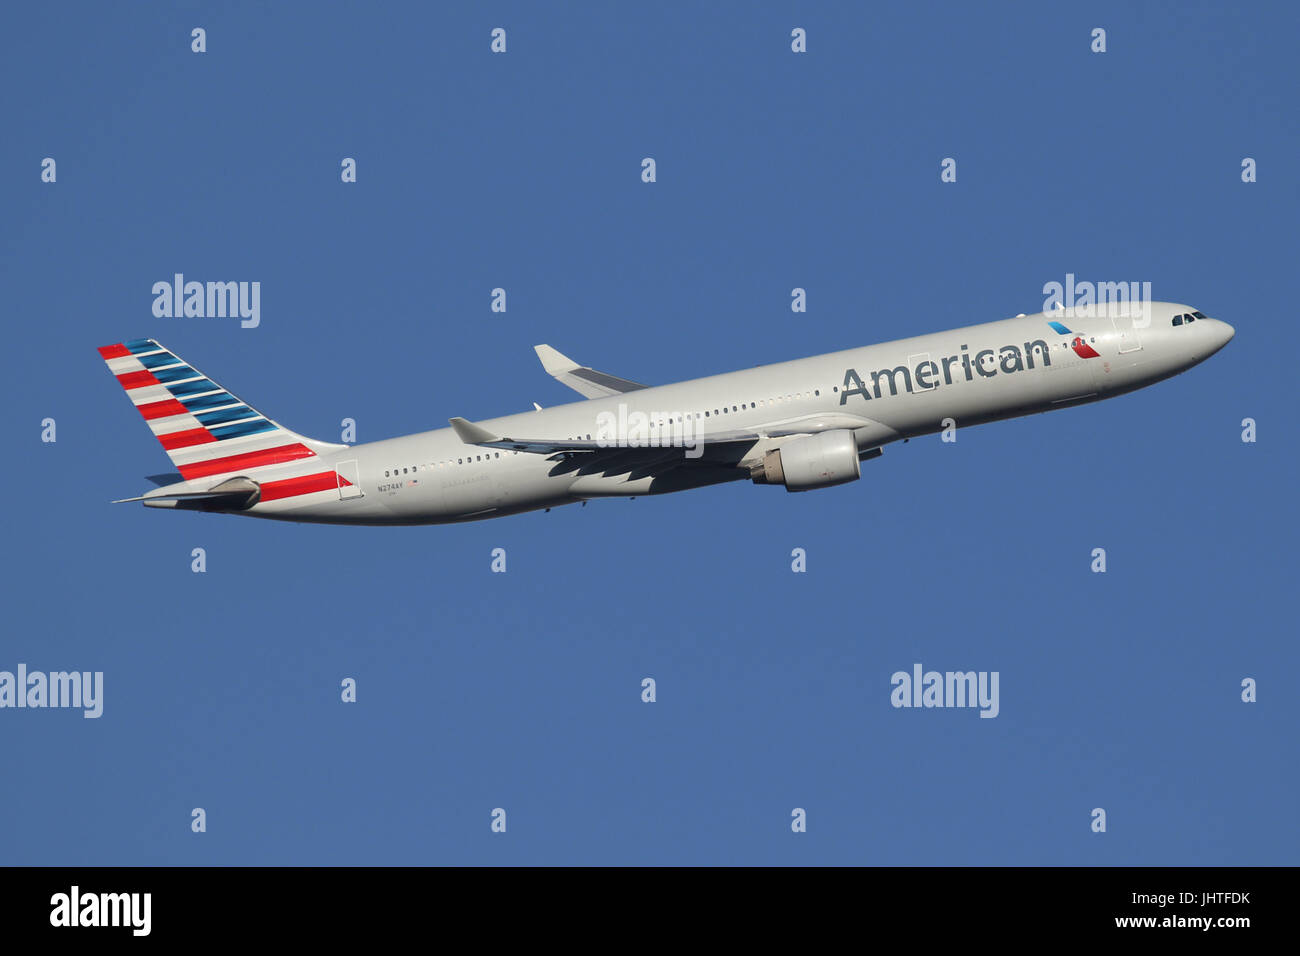 american a330 - Stock Image